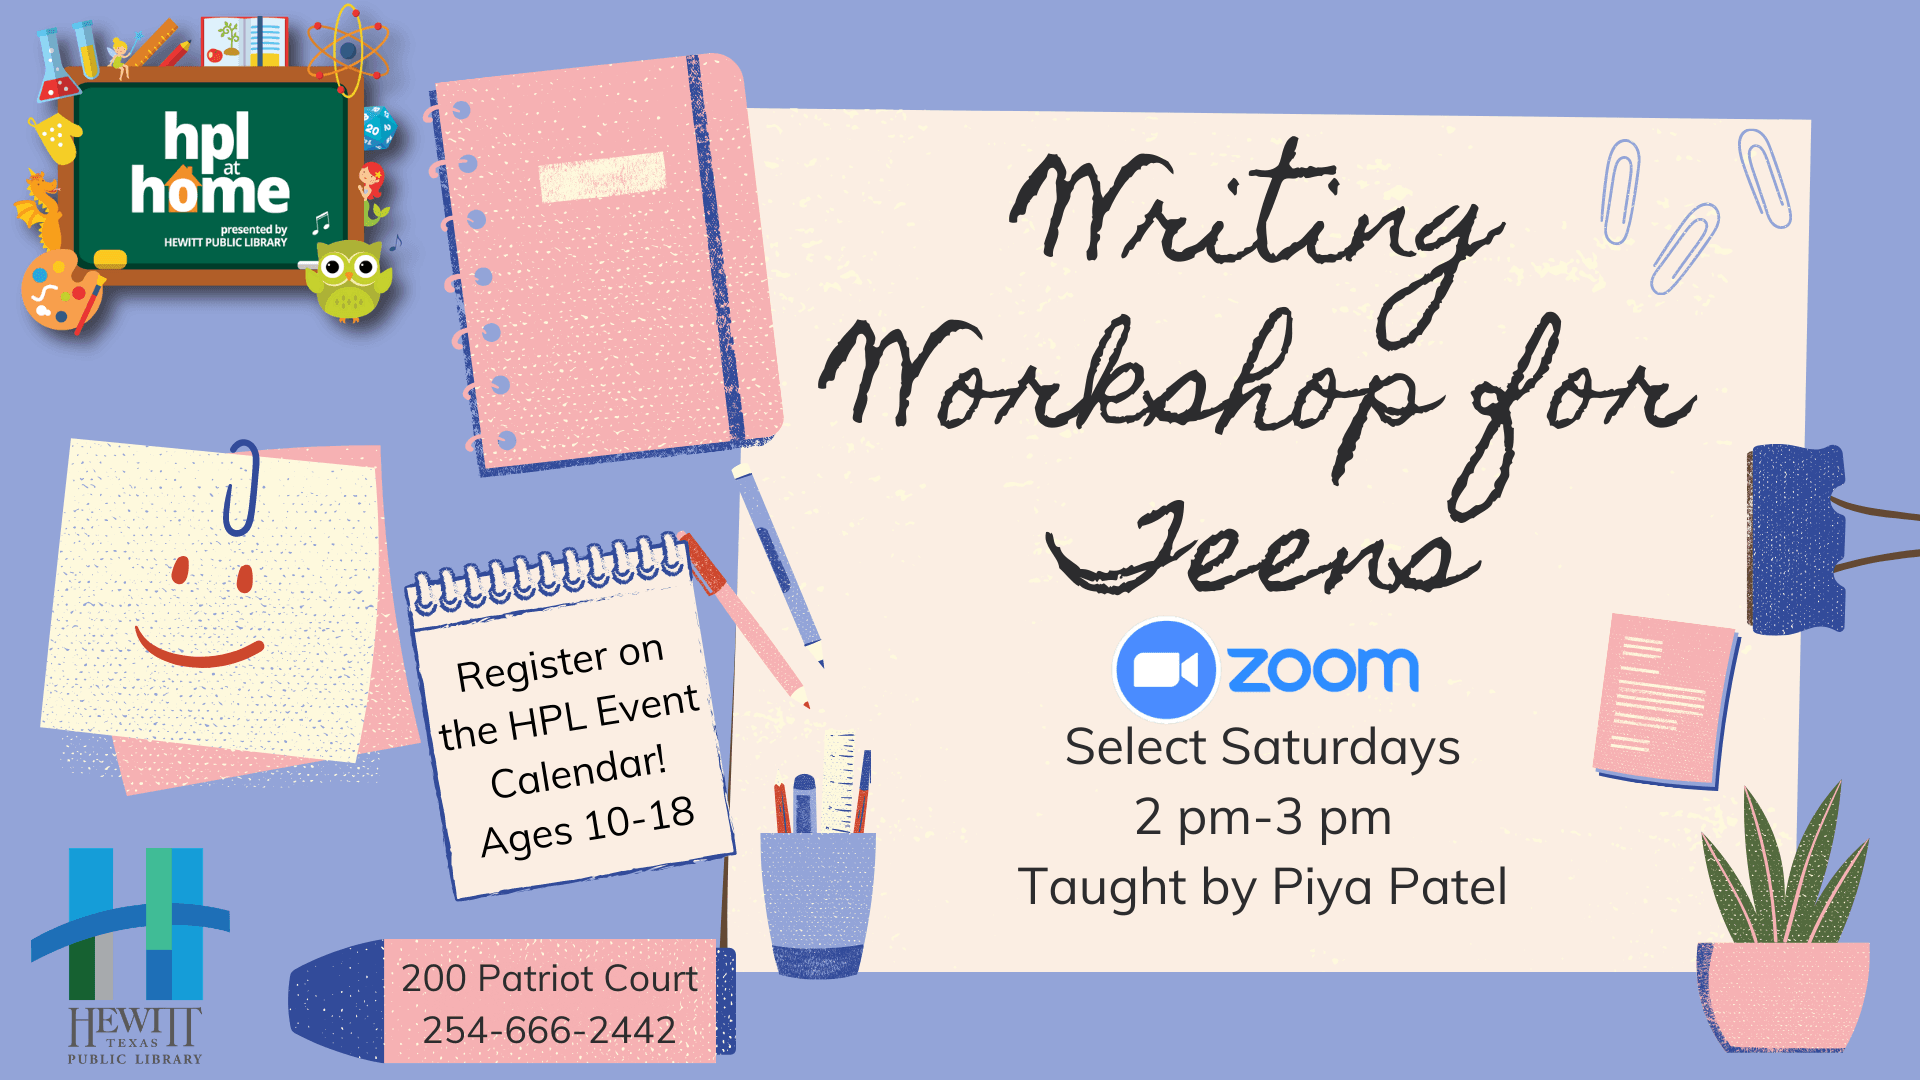 Writing Workshop for Teens